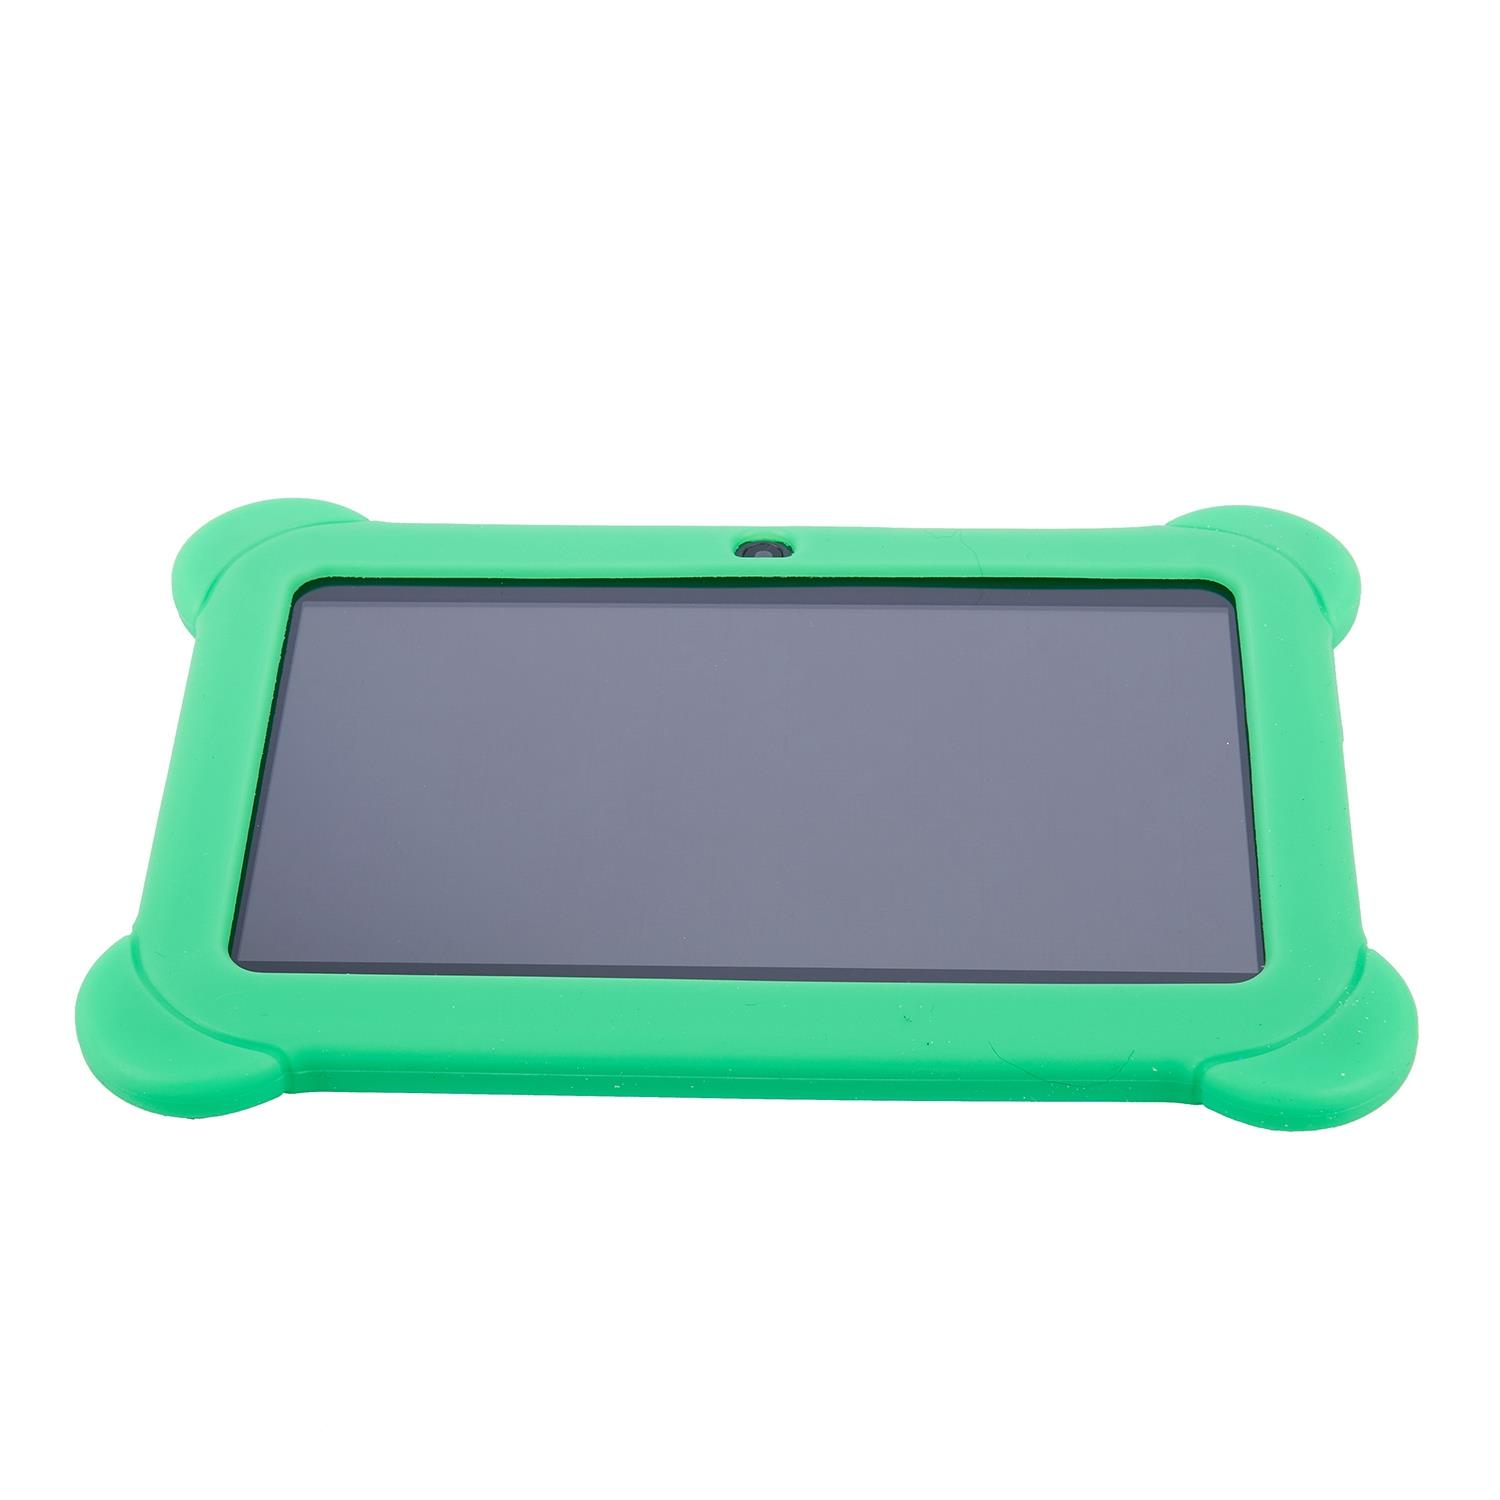 4GB Android 4.4 Wi Fi Tablet PC Beautiful 7 inch Five Point Multitouch Display Special Kids Edition